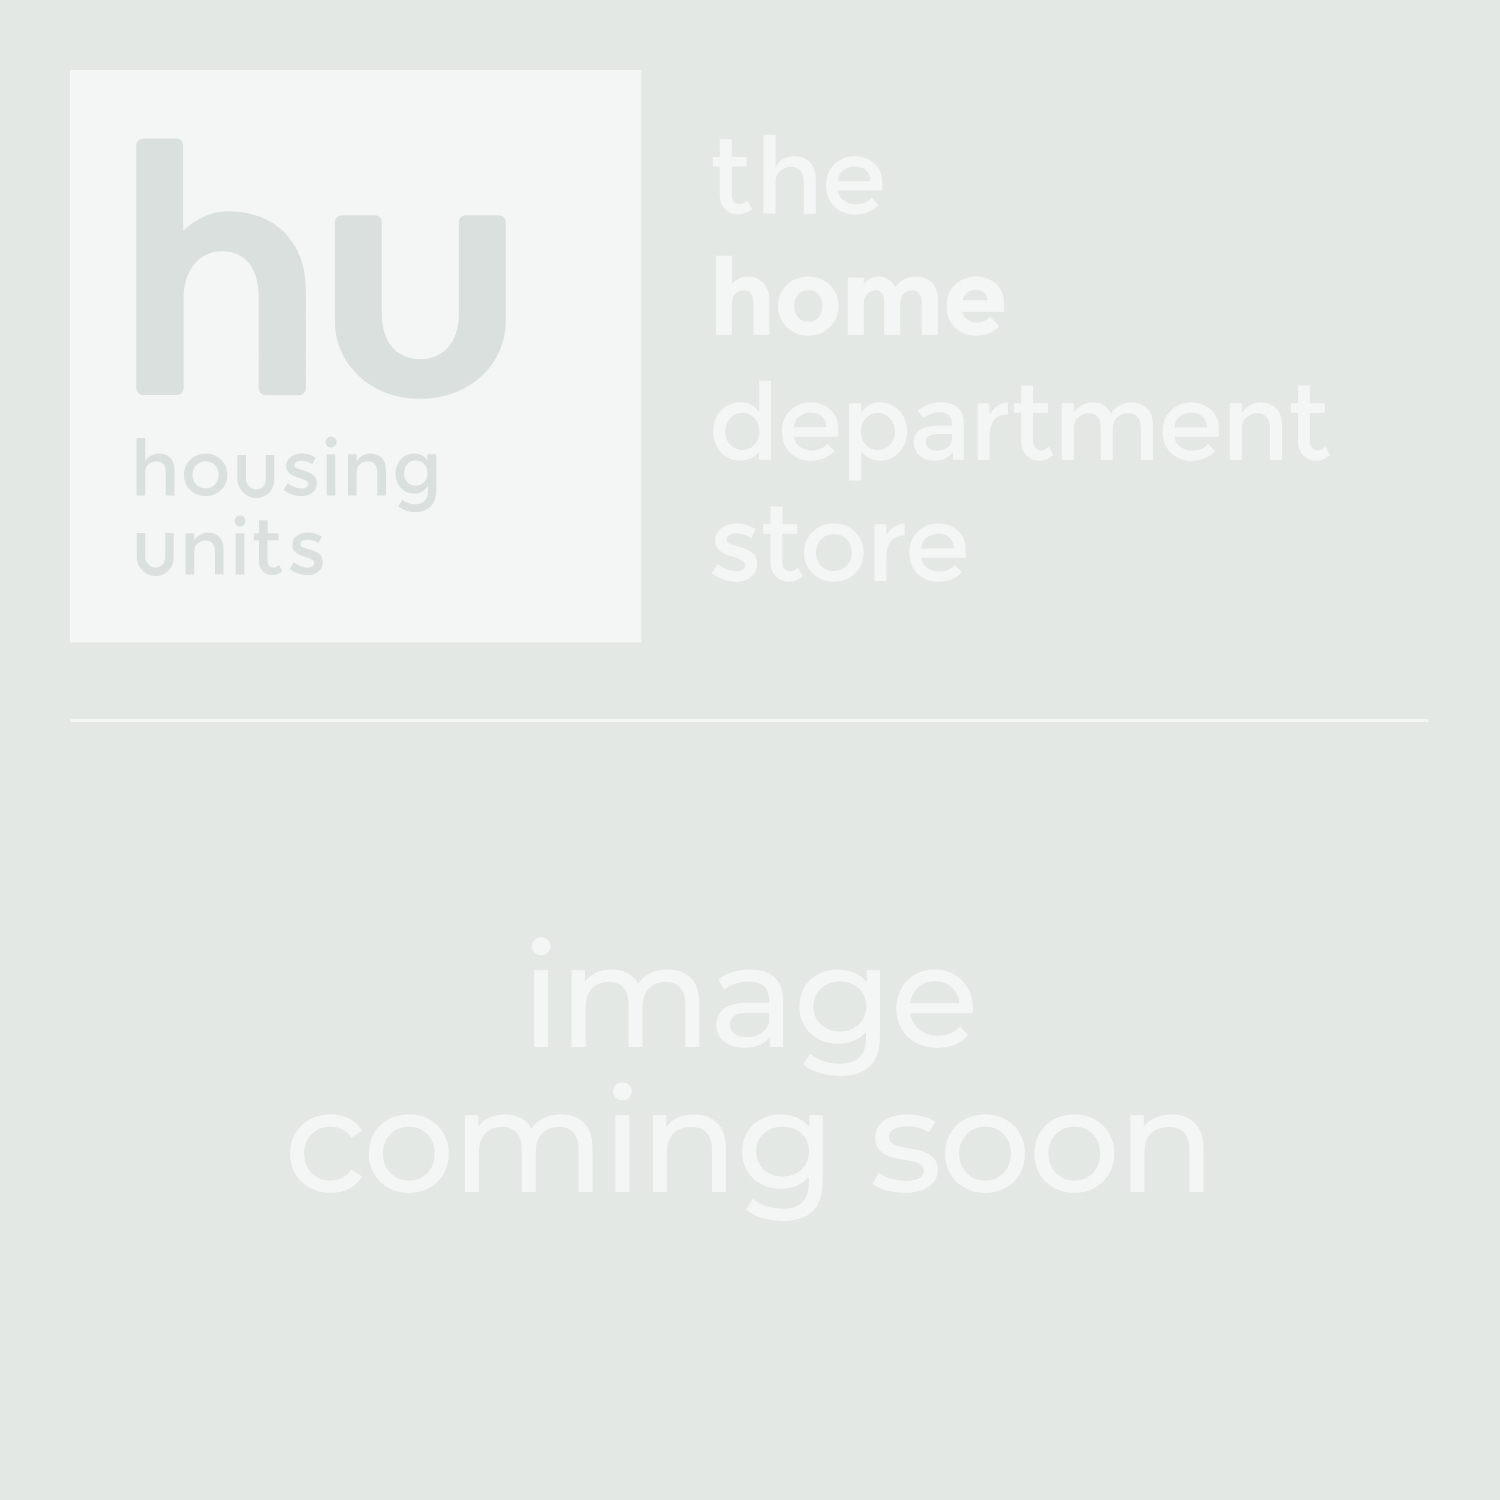 High Quality Crystal Maxima Bordeaux Wine Glass  | Housing Units